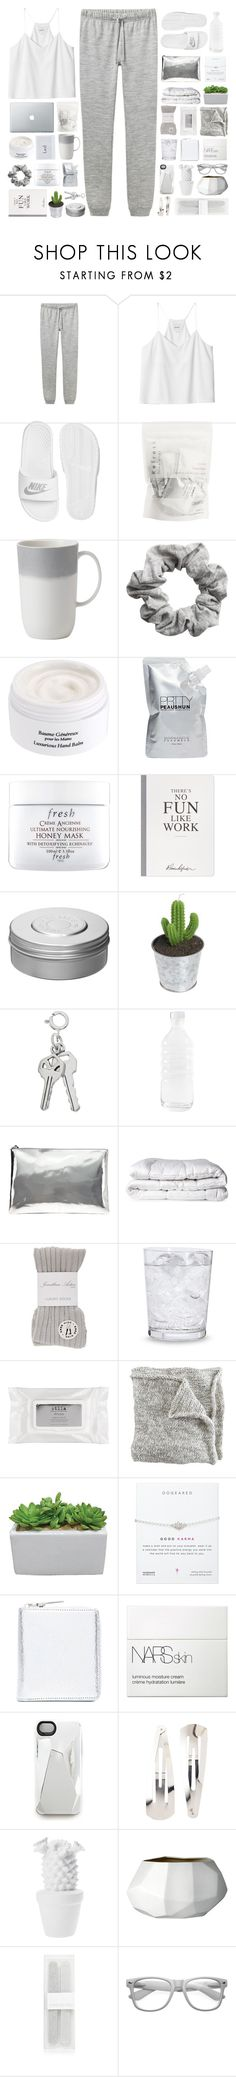 """""""Laying in bed."""" by rebelbeauty ❤ liked on Polyvore featuring A.P.C., Monki, NIKE, Vera Wang, H&M, Diptyque, Prtty Peaushun, Fresh, Selfridges and Hermès"""